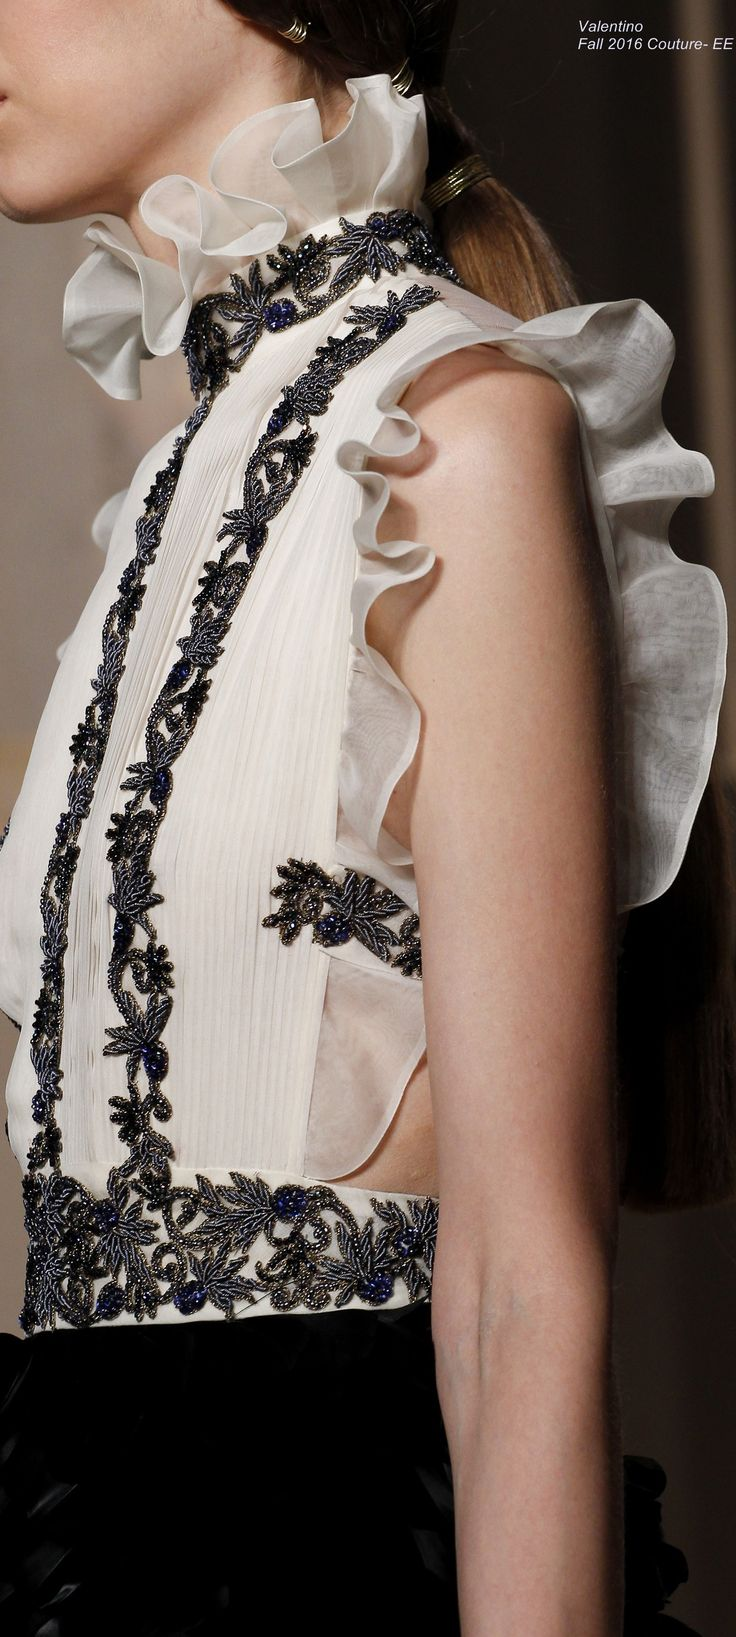 Valentino Fall 2016 Couture- EE